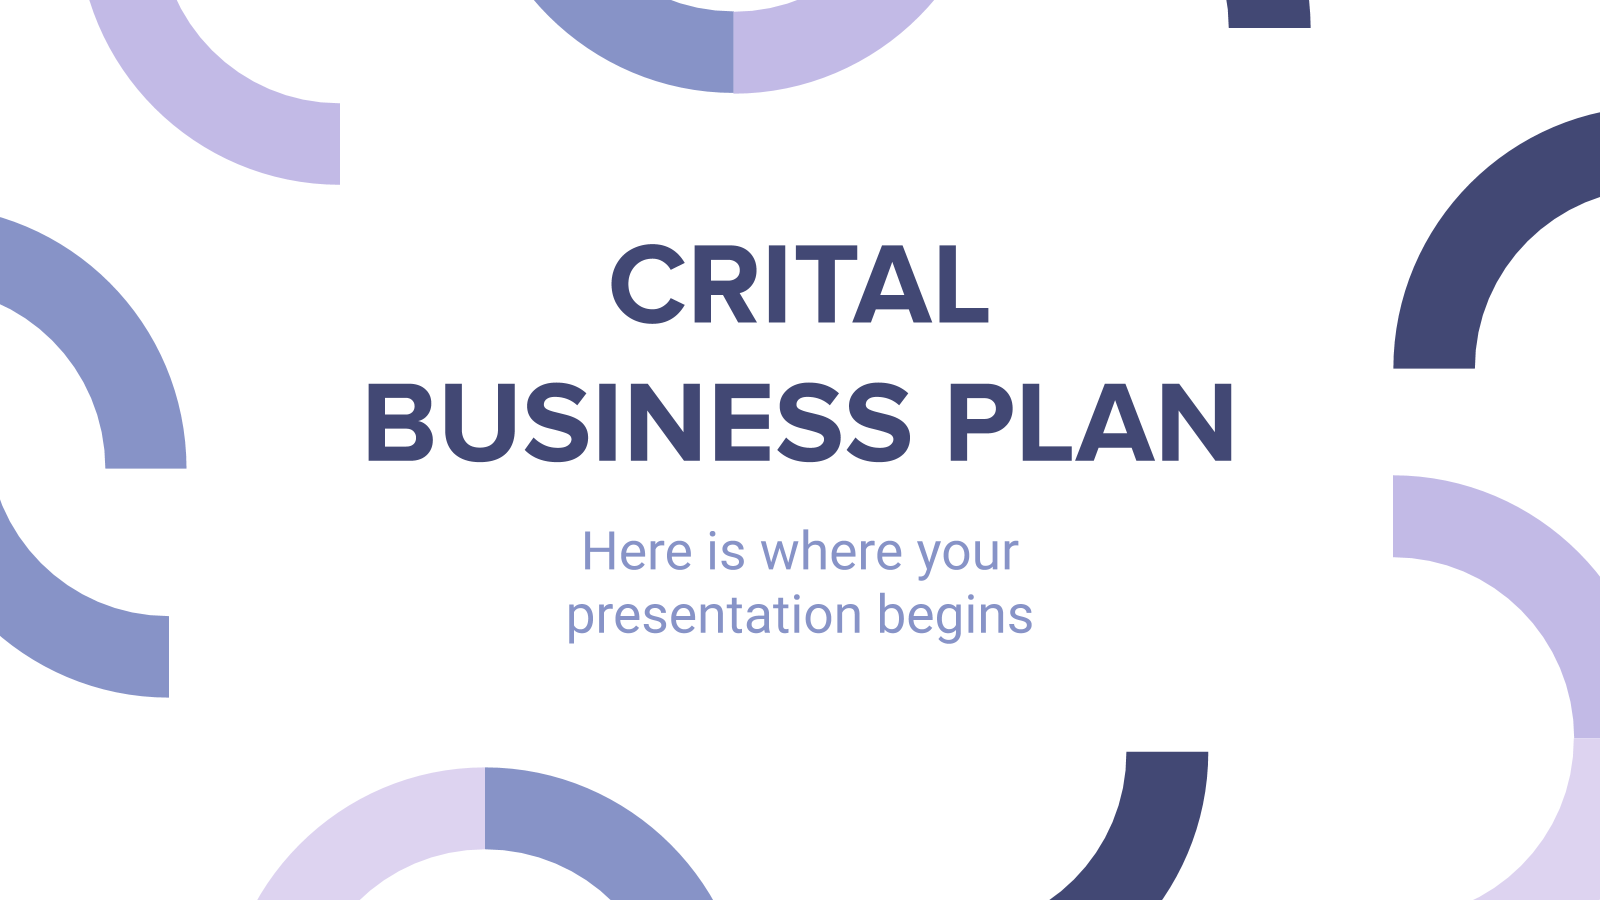 Crital Business Plan presentation template